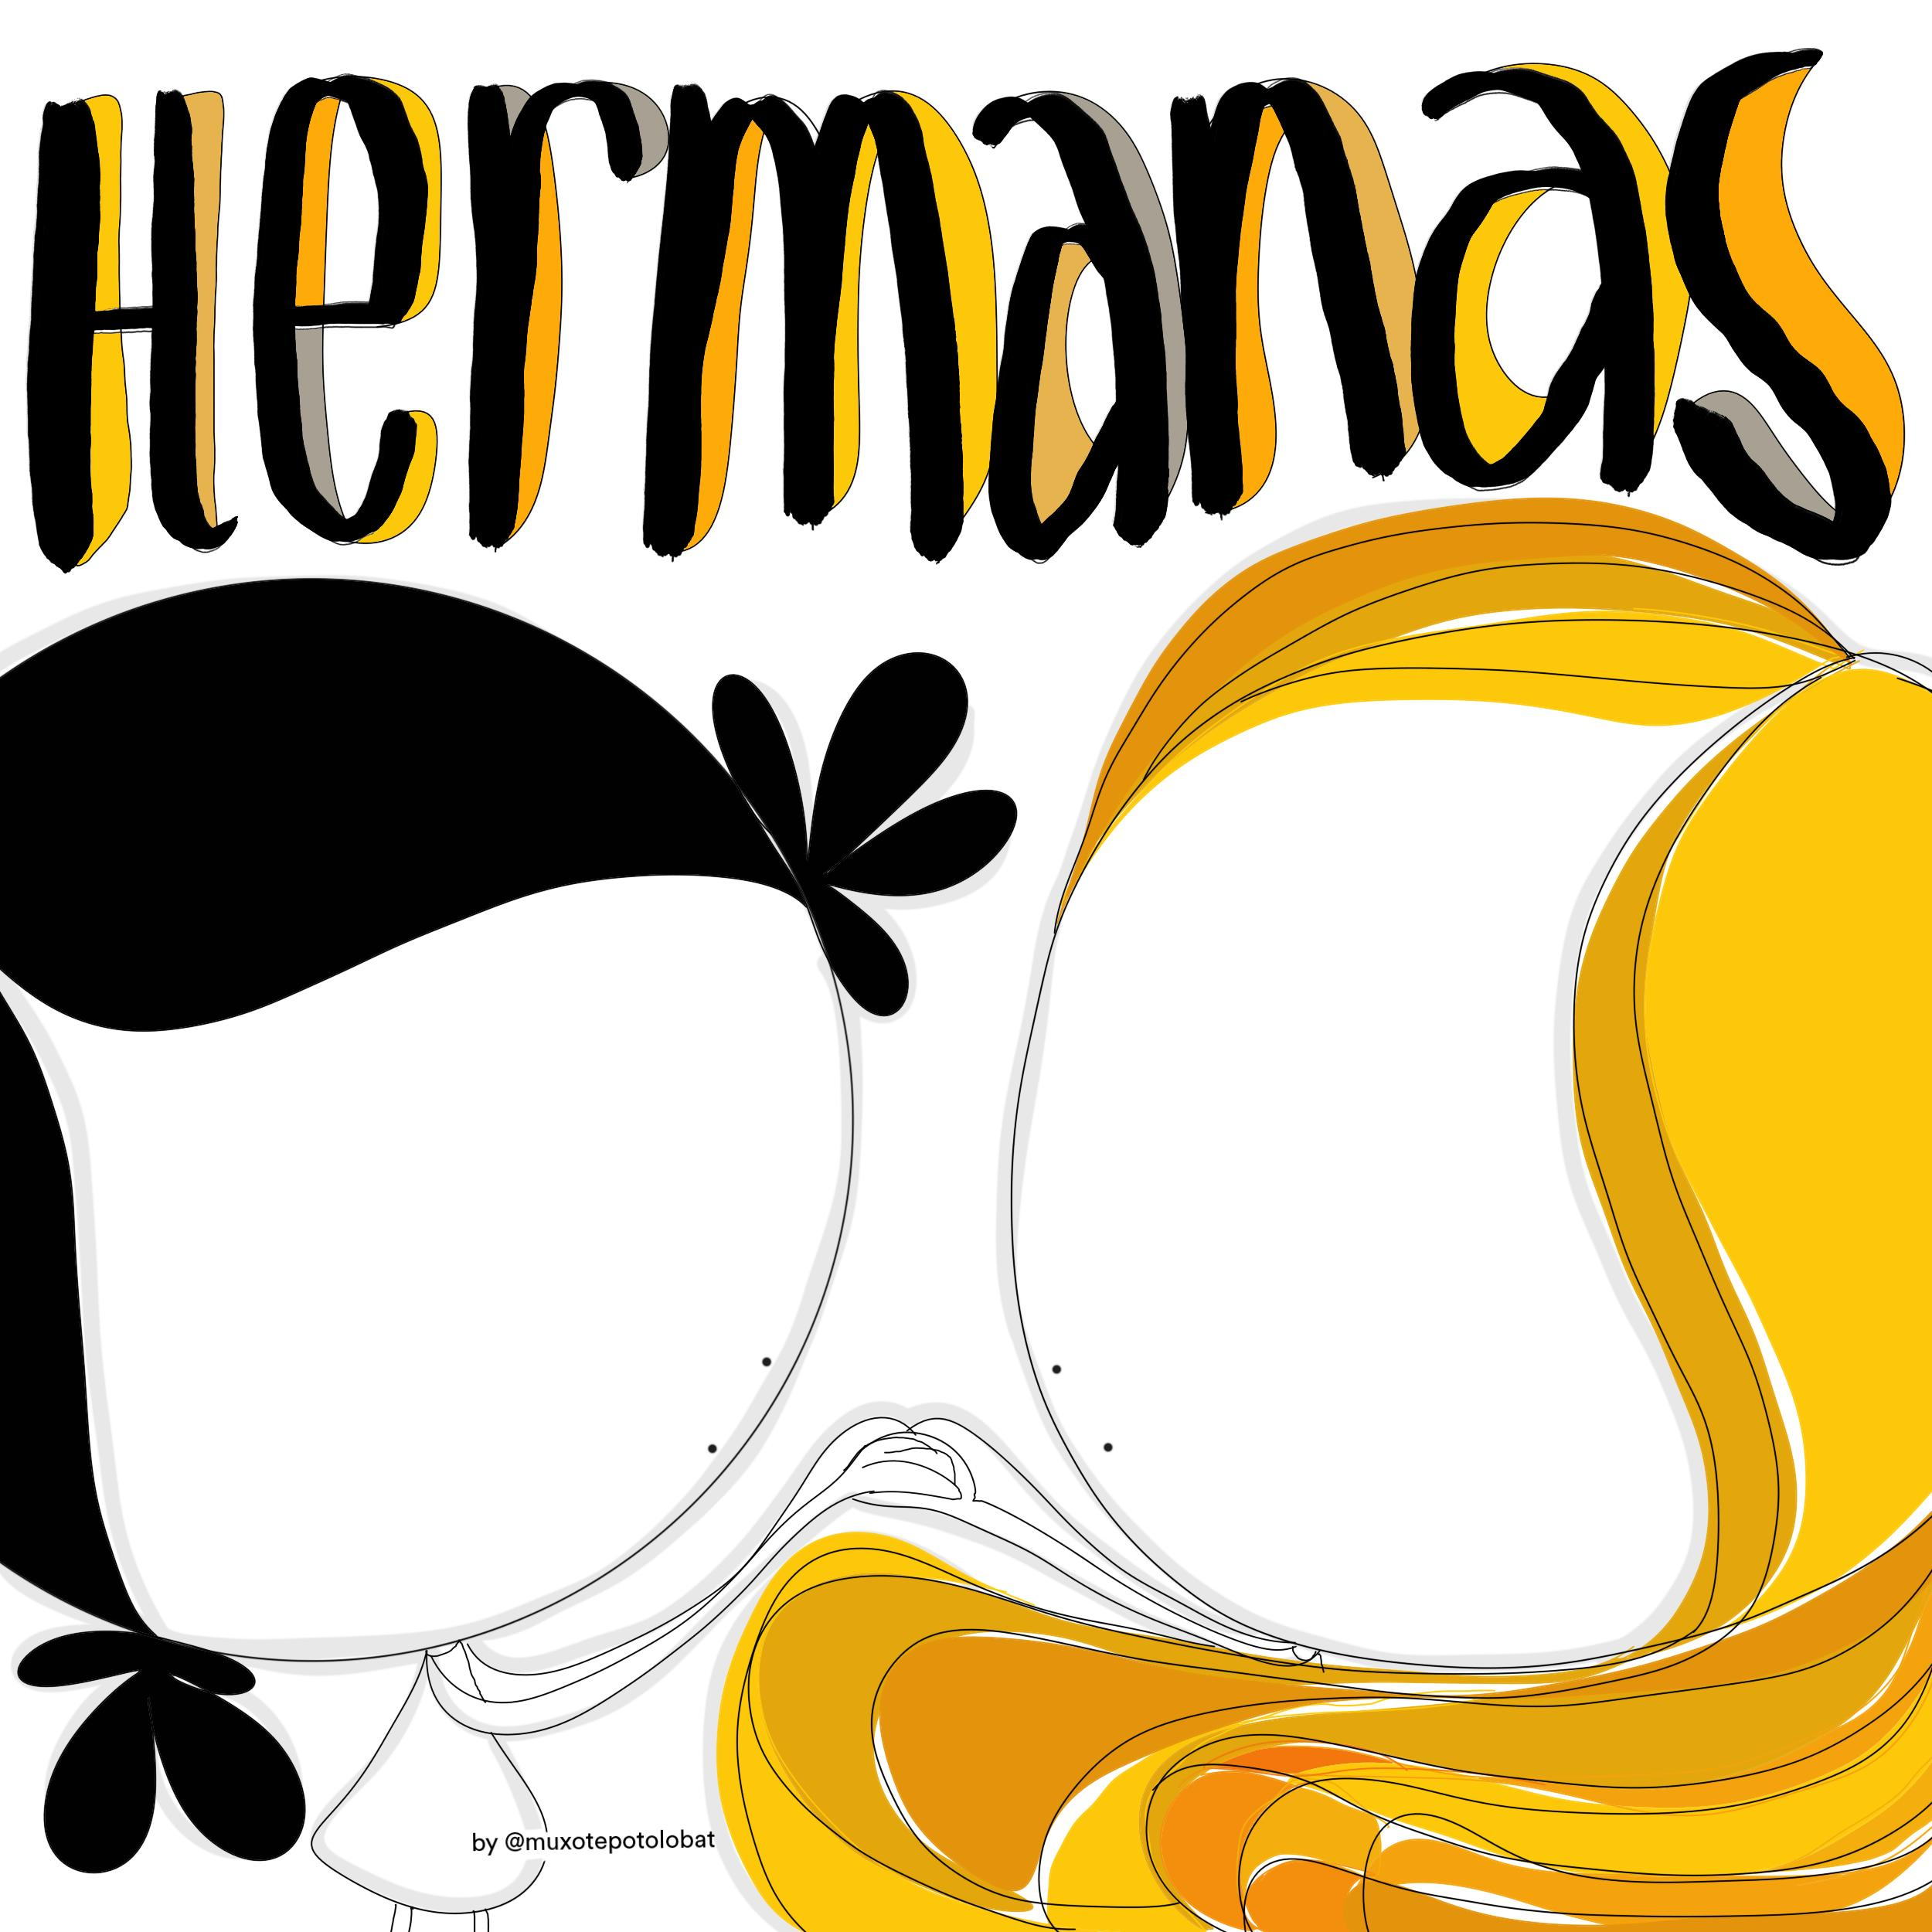 hermanas by Muxote Potolo Bat